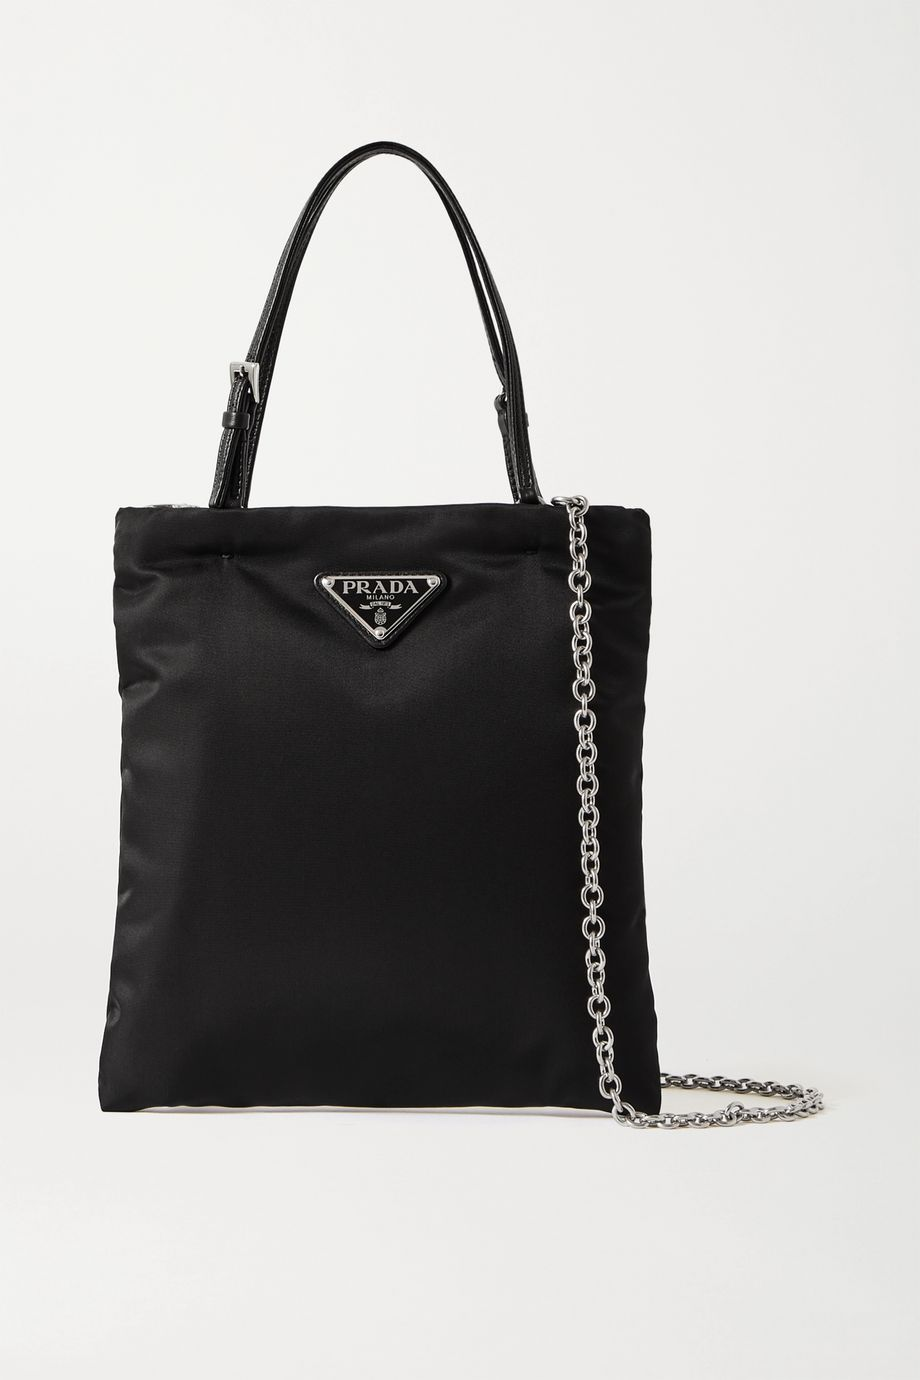 Prada Tessuto textured leather-trimmed nylon tote